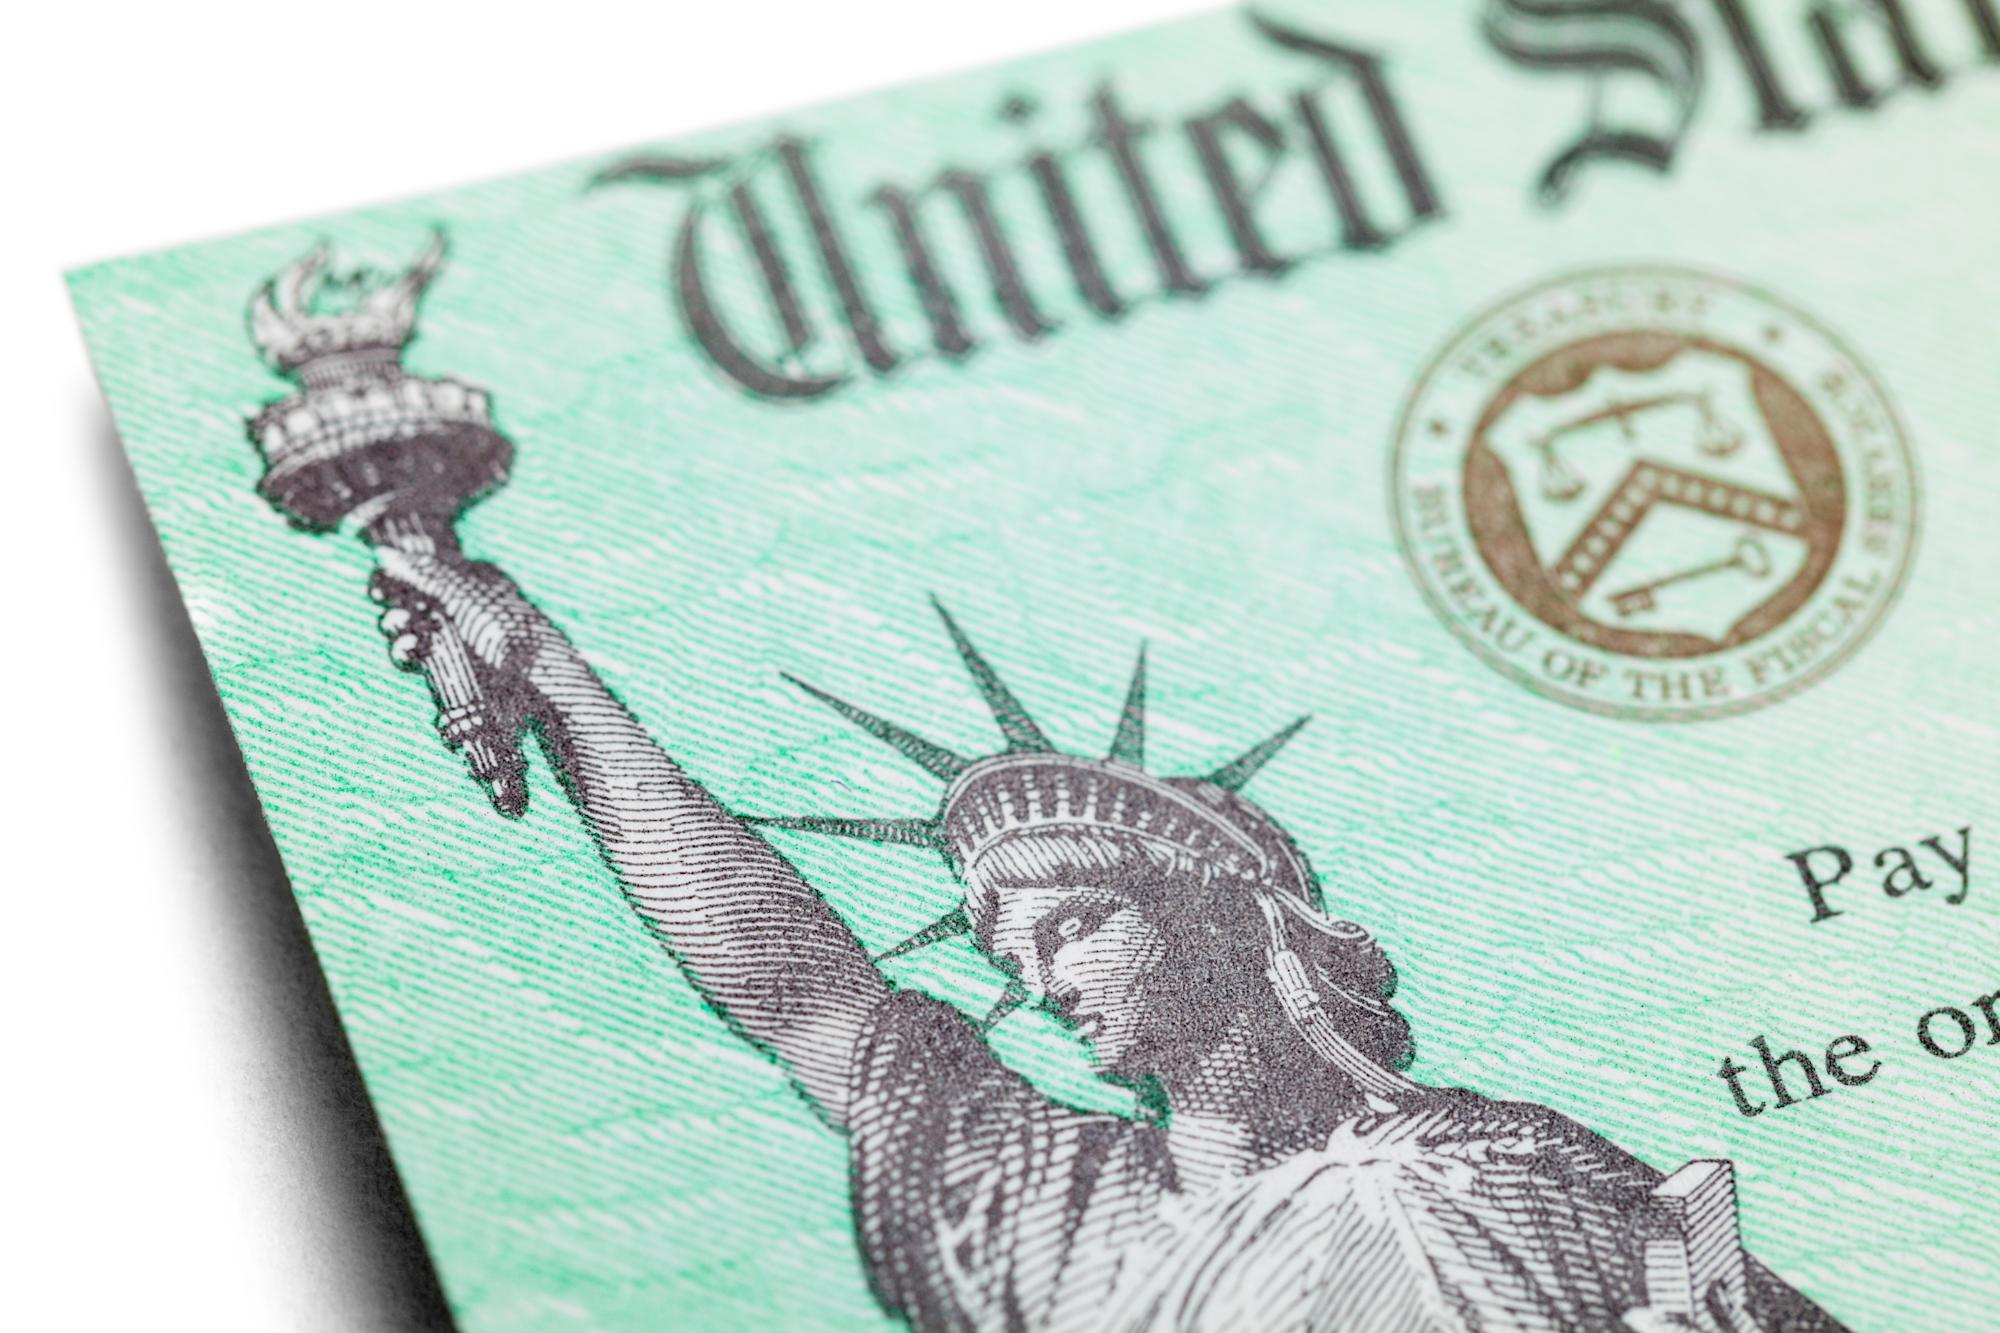 Stimulus checks: IRS sends 1.1 million more payments in latest round